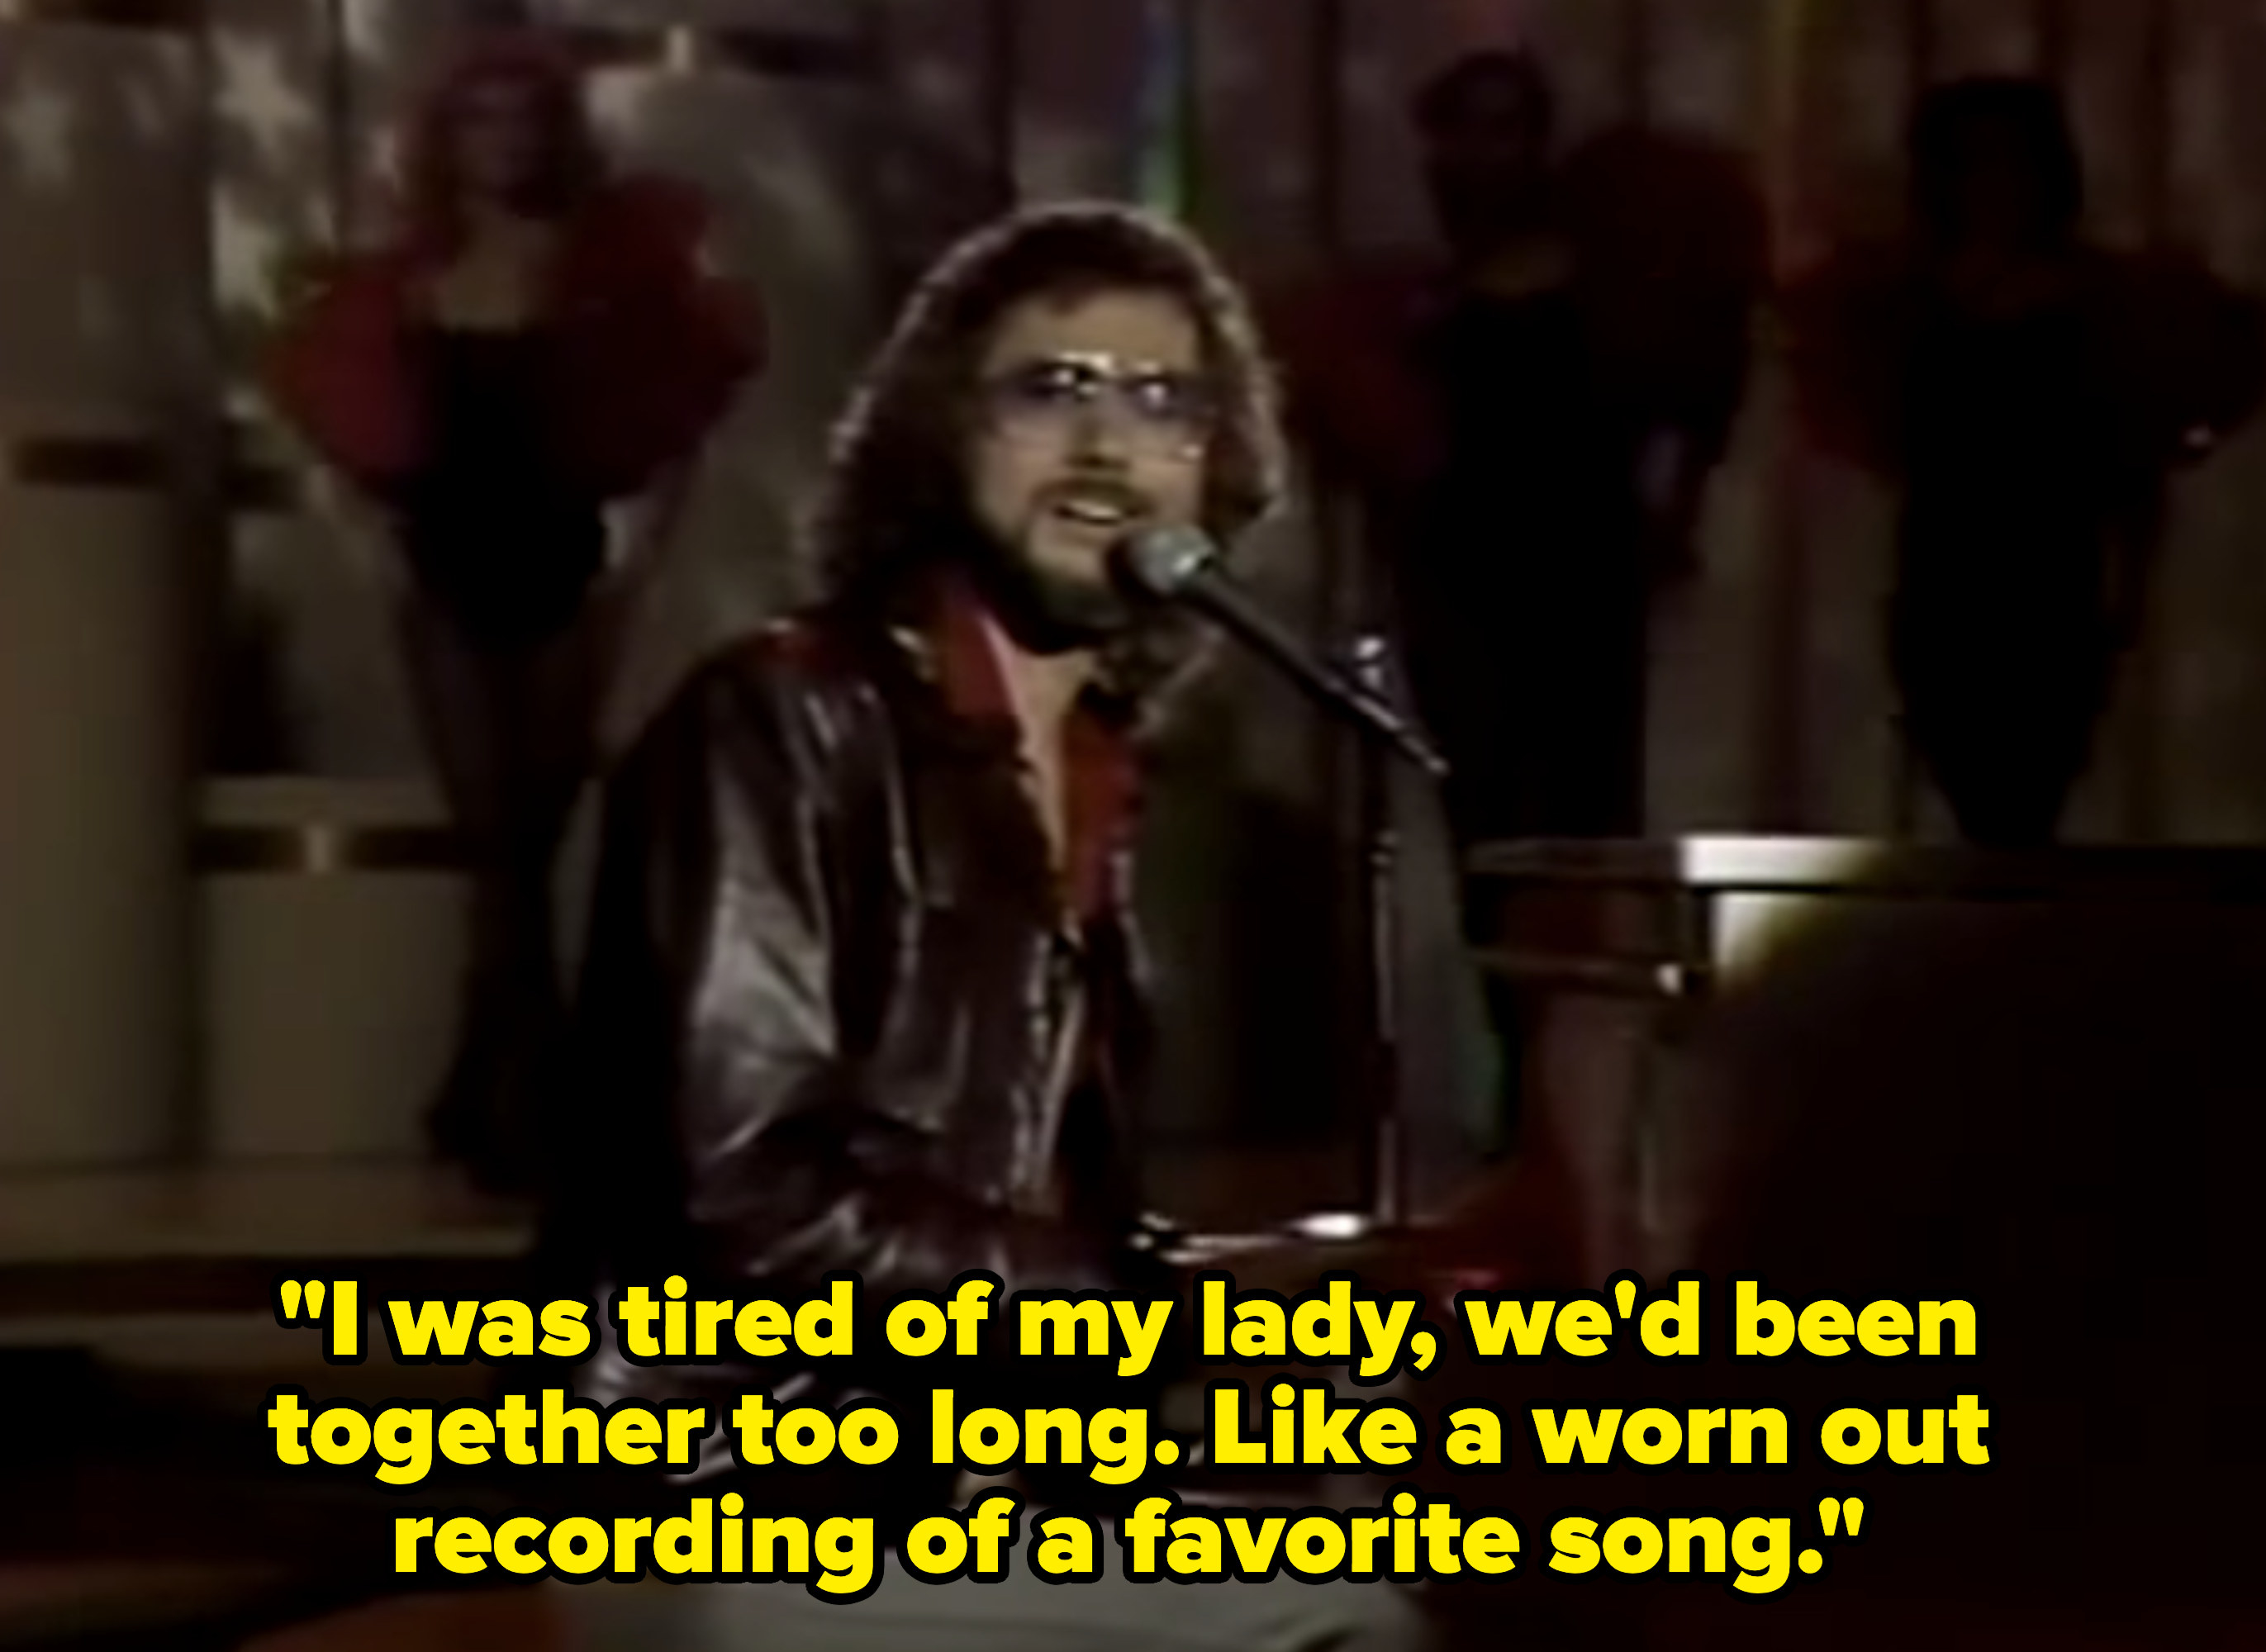 """Rupert Holmes singing """"I was tired of my lady, we'd been together too long. Like a worn out recording of a favorite song."""""""